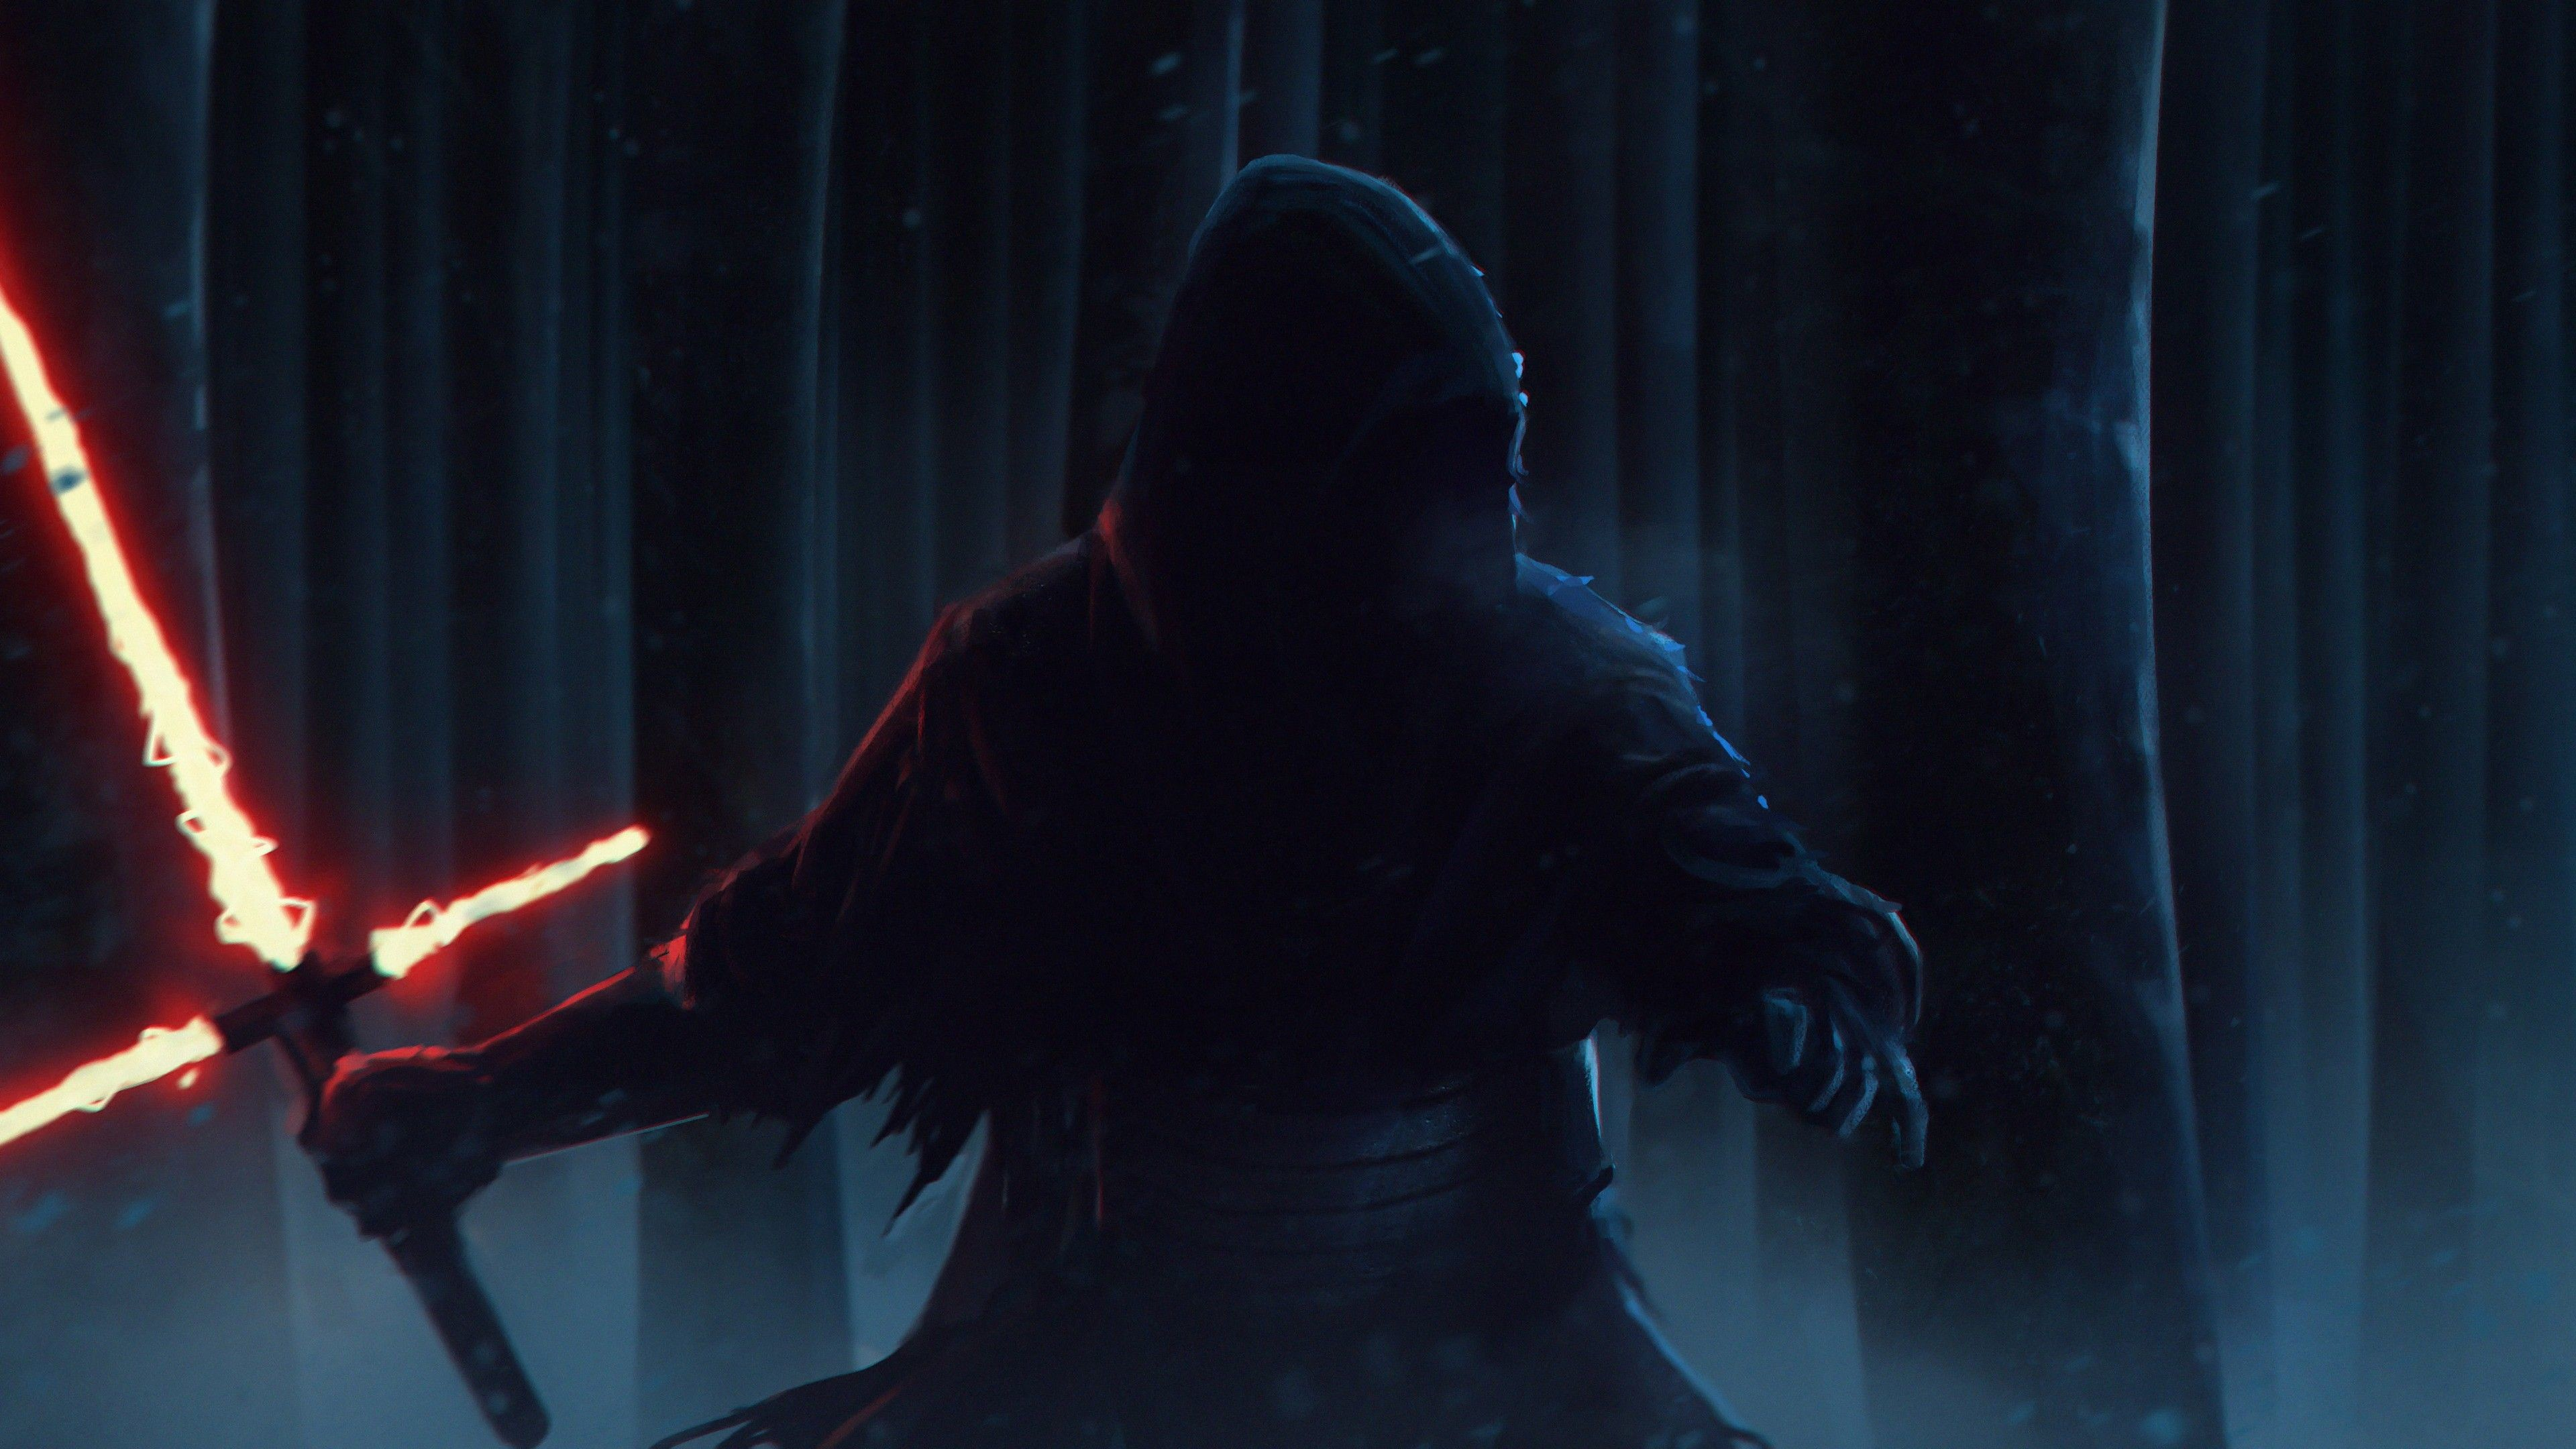 3840x2160 Movie-Kylo-Ren-Wallpaper-Star-Wars-7.jpg